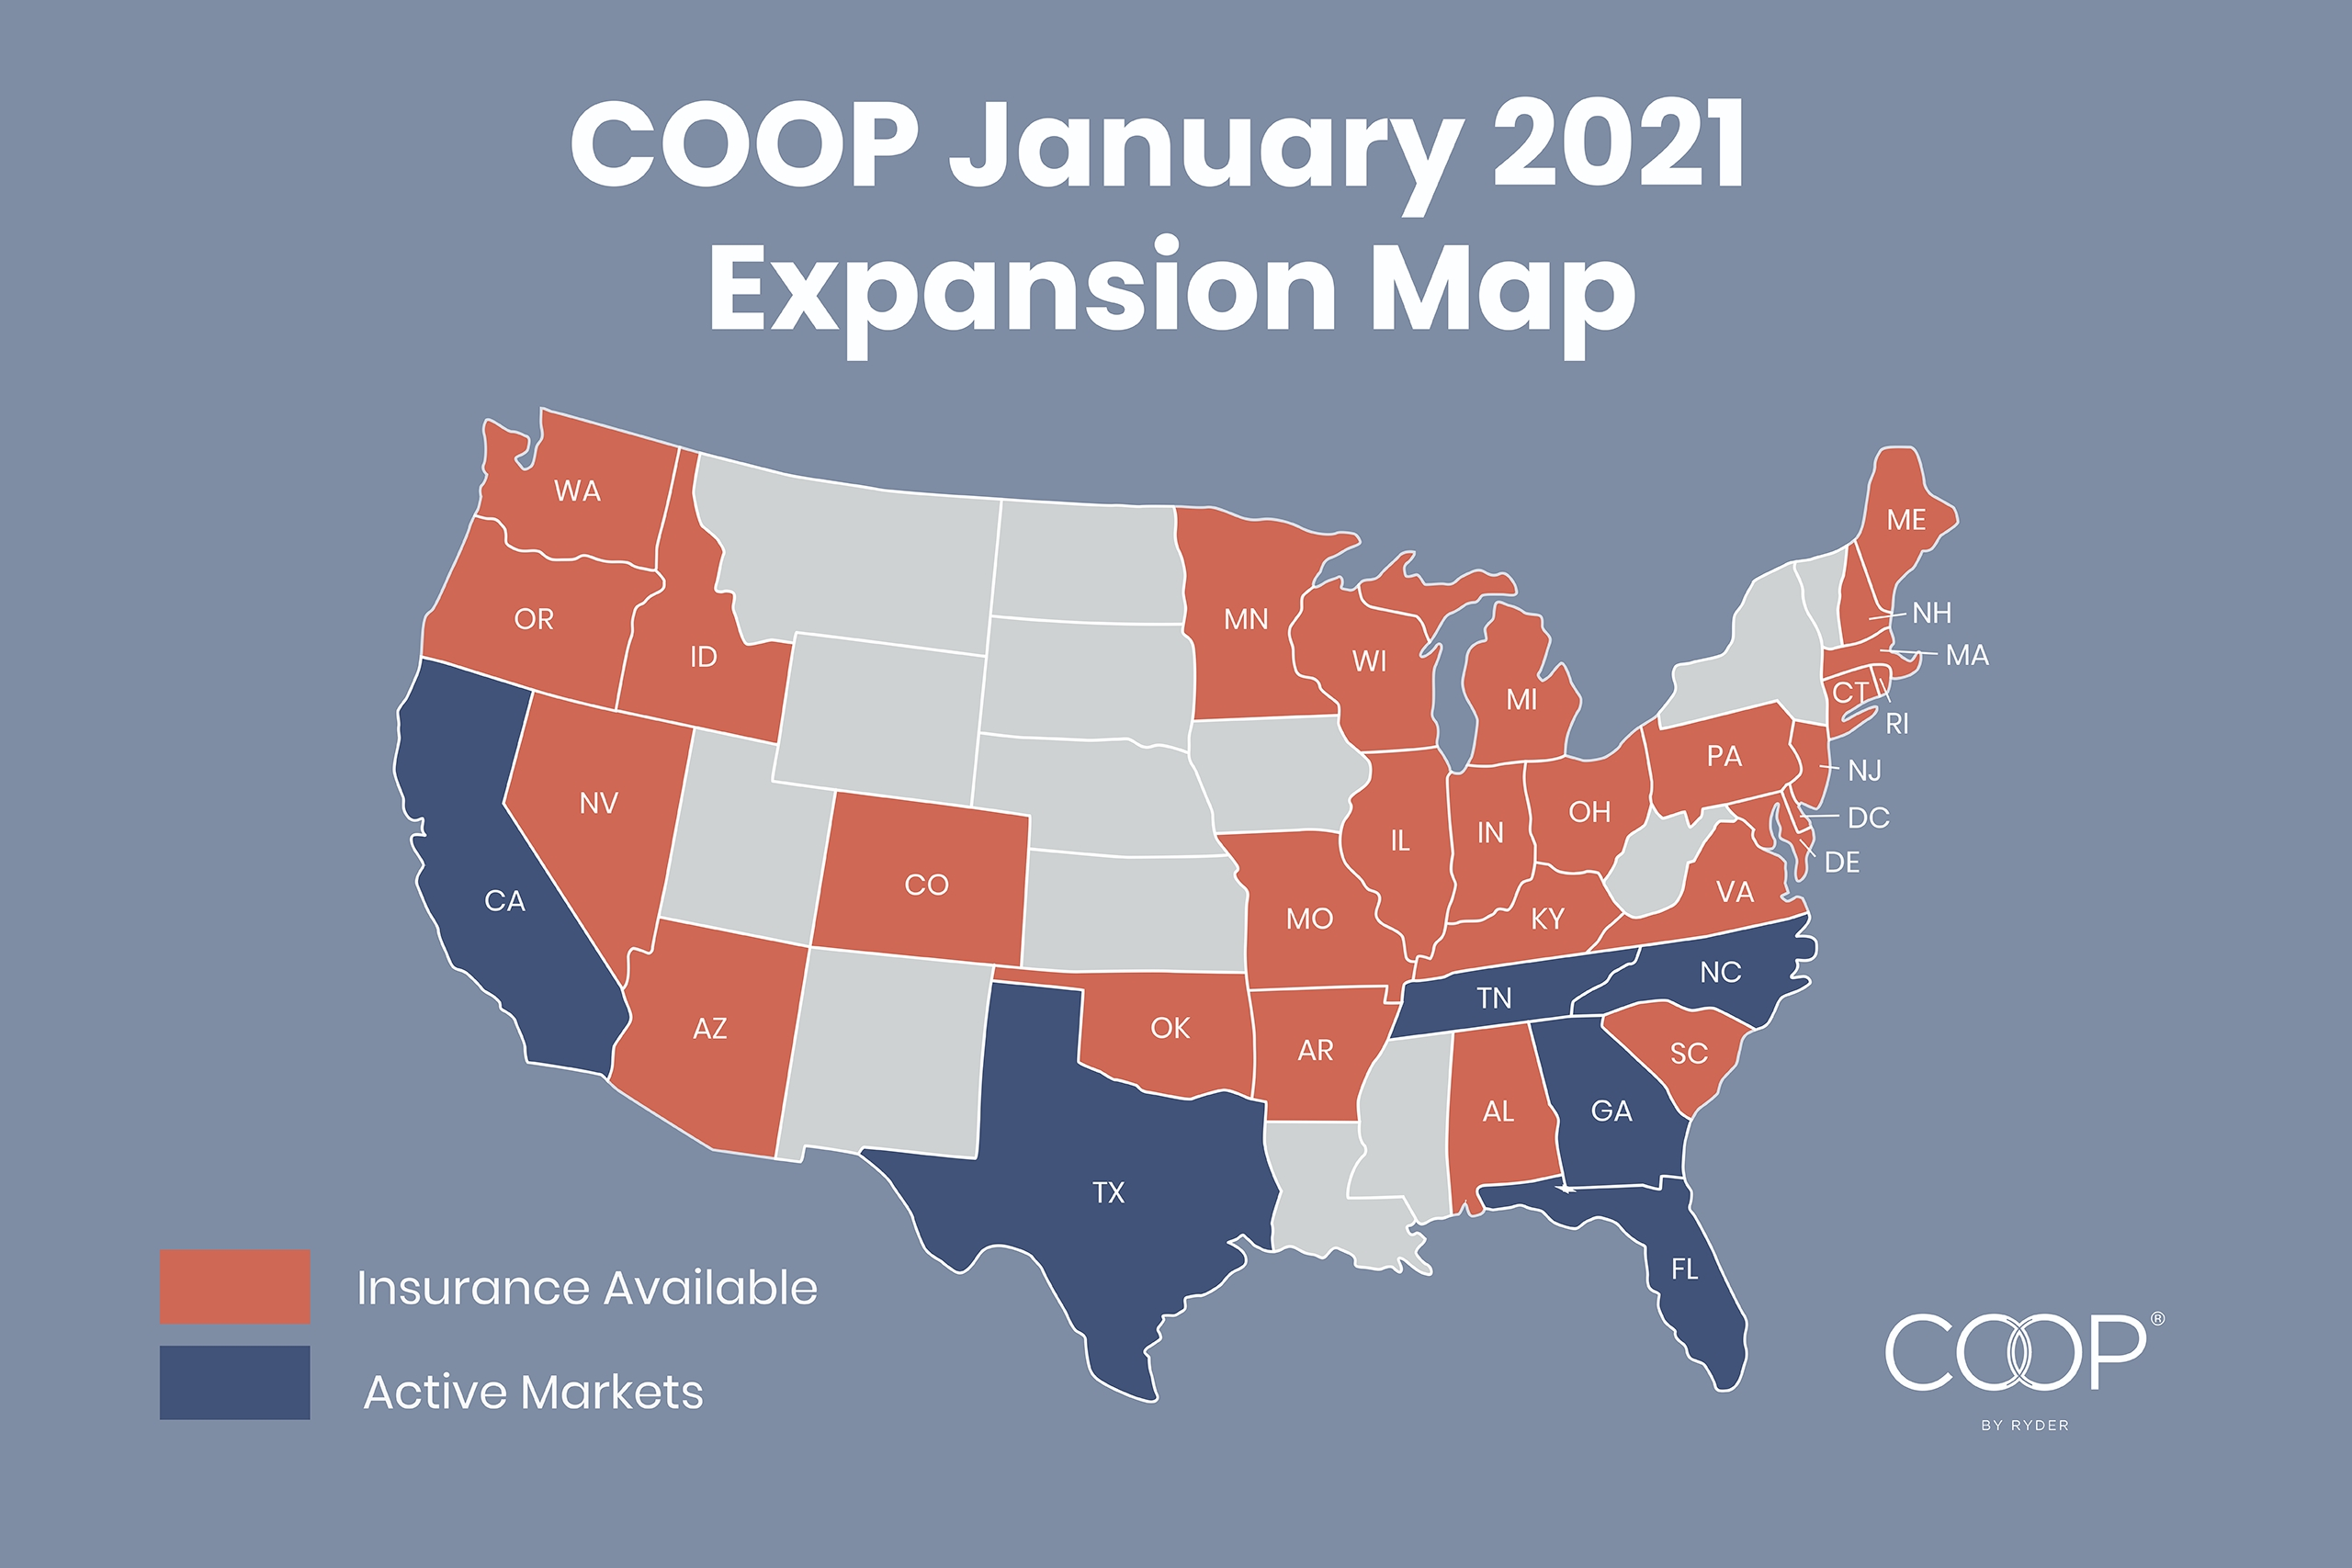 COOP expands insurance program to 34 states, enabling existing customers with large fleets across multiple markets to leverage the platform wherever they operate